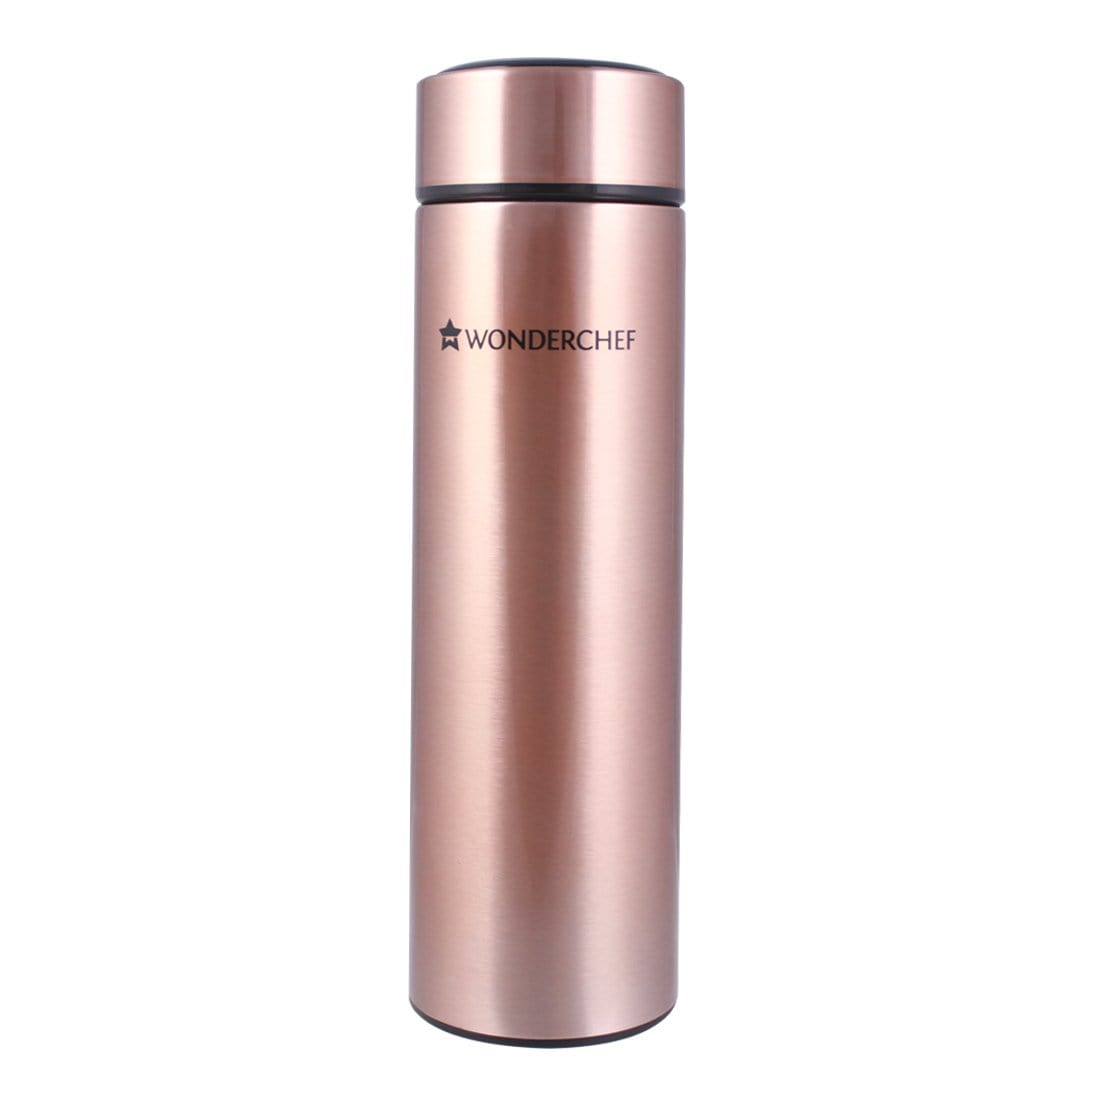 Wonderchef Nutri-Bot Double Wall Flask 480ml, Copper